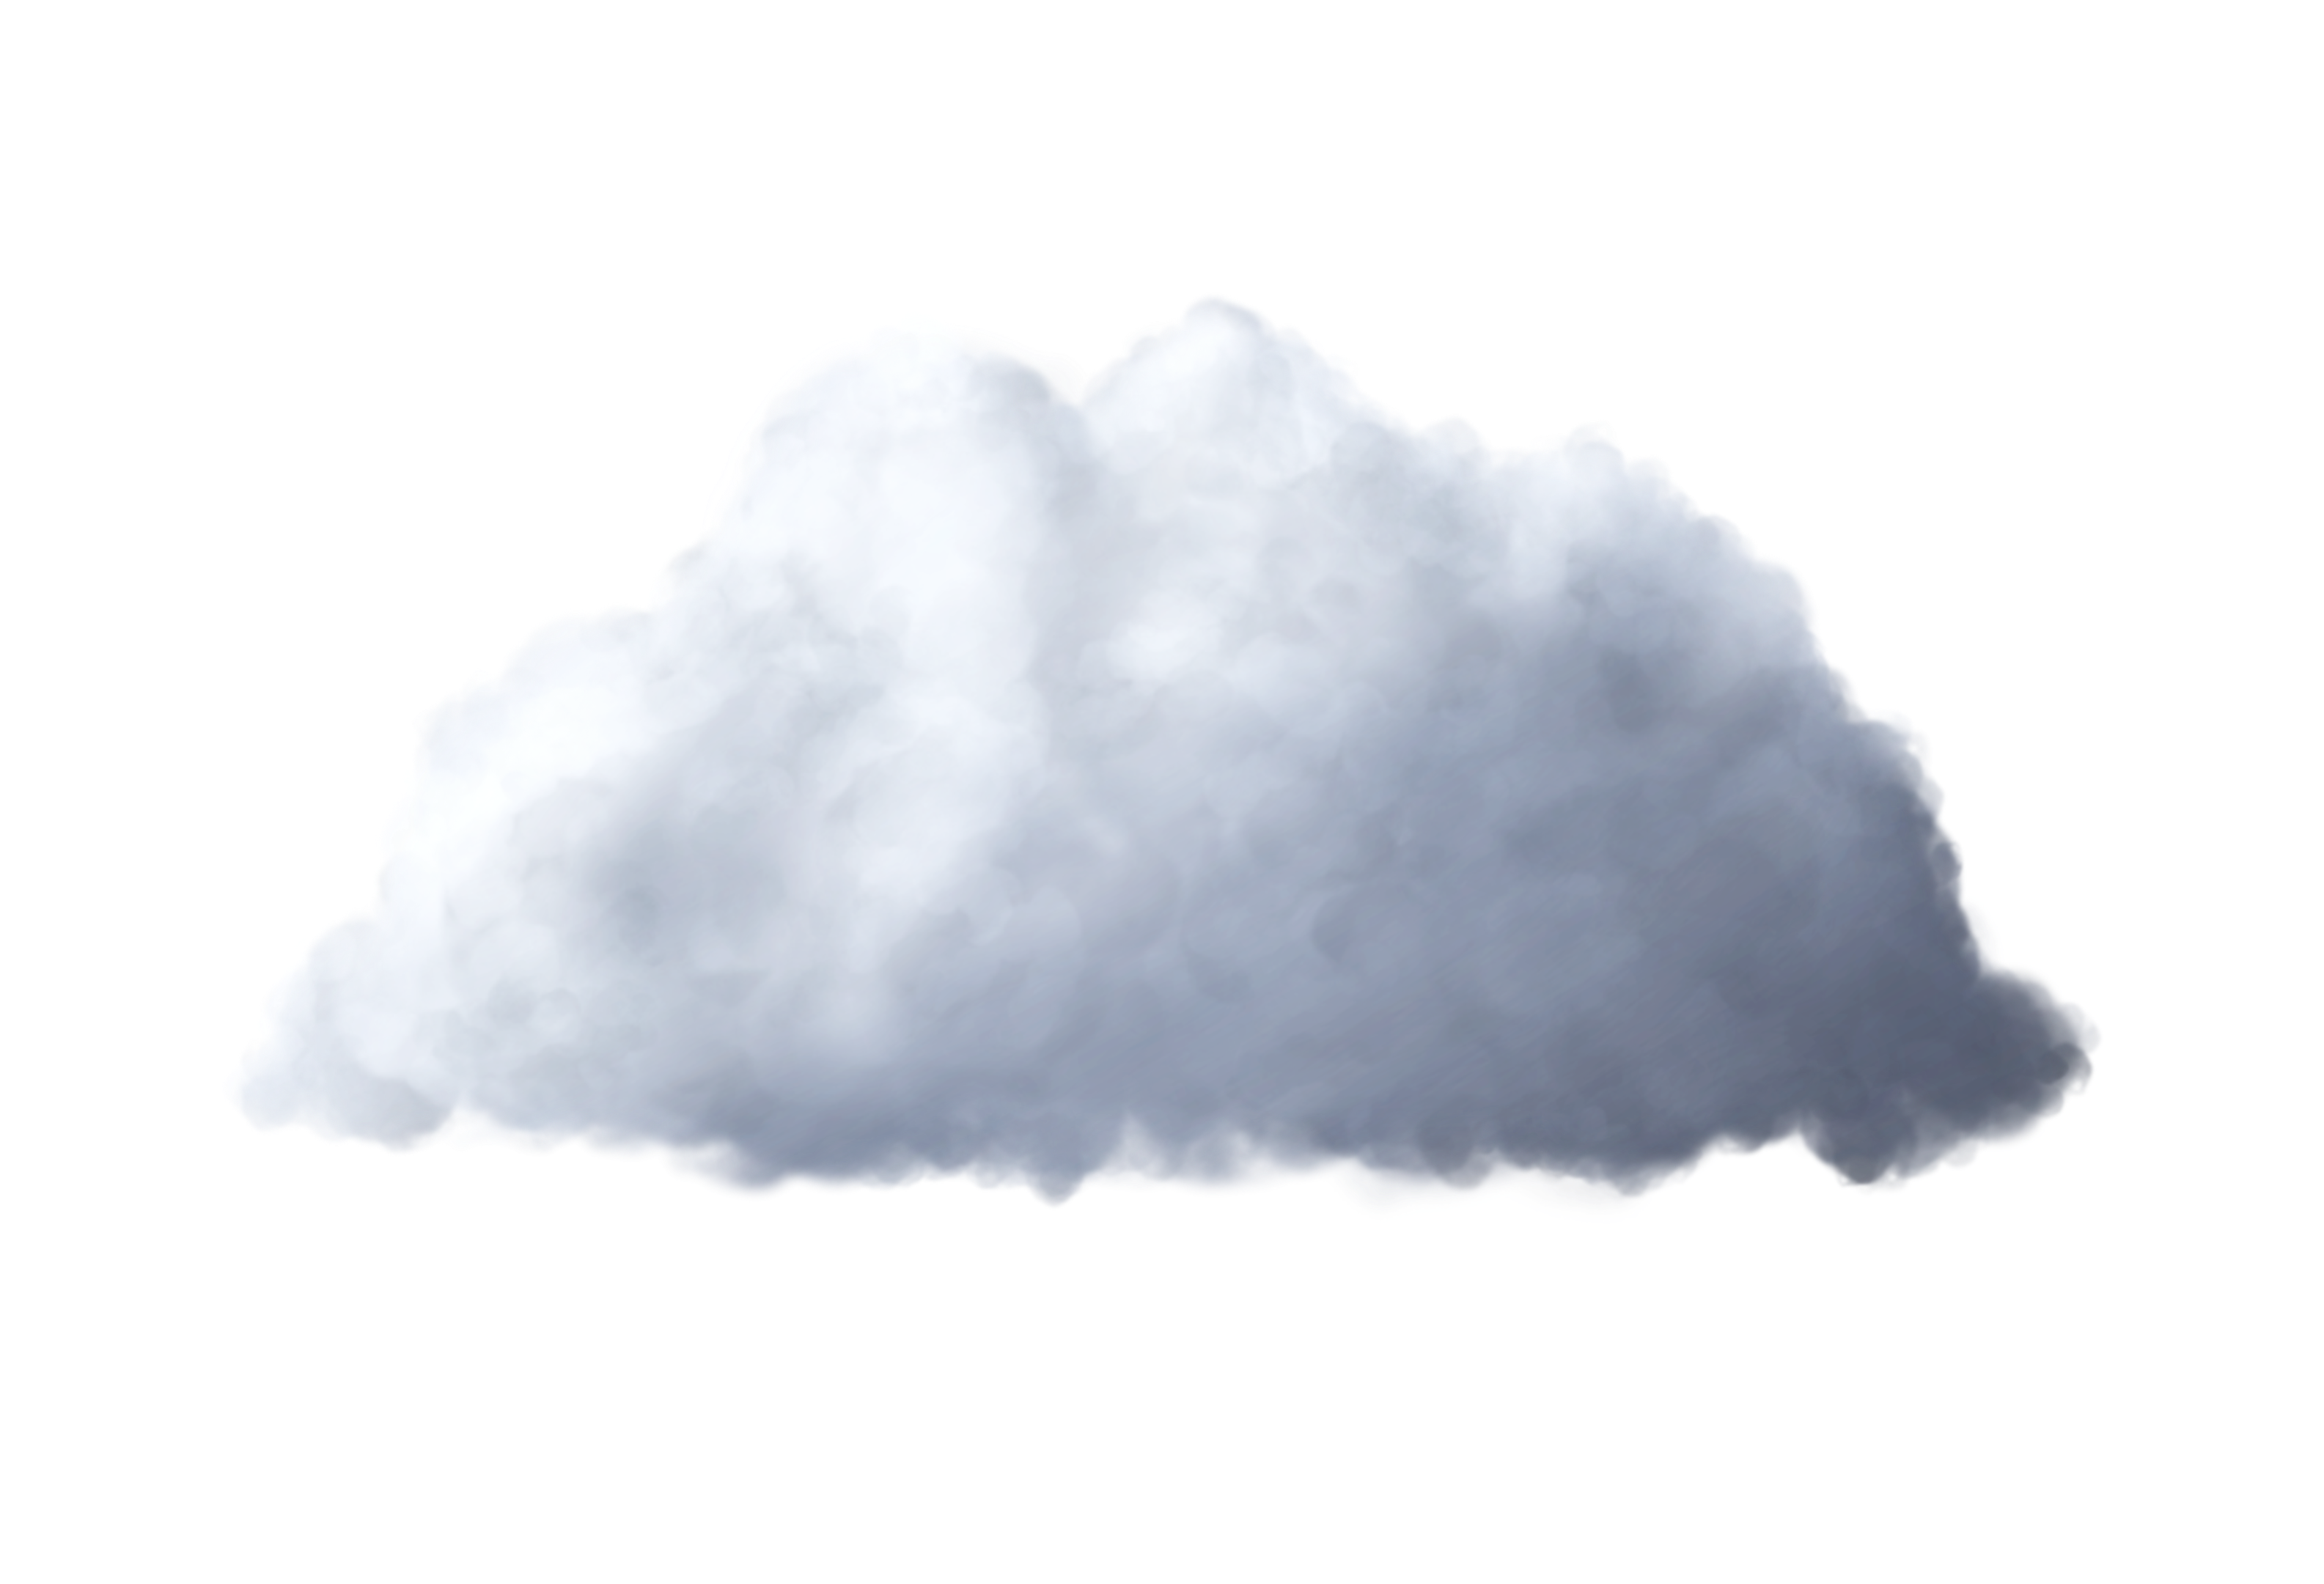 Png images background. White cloud image purepng